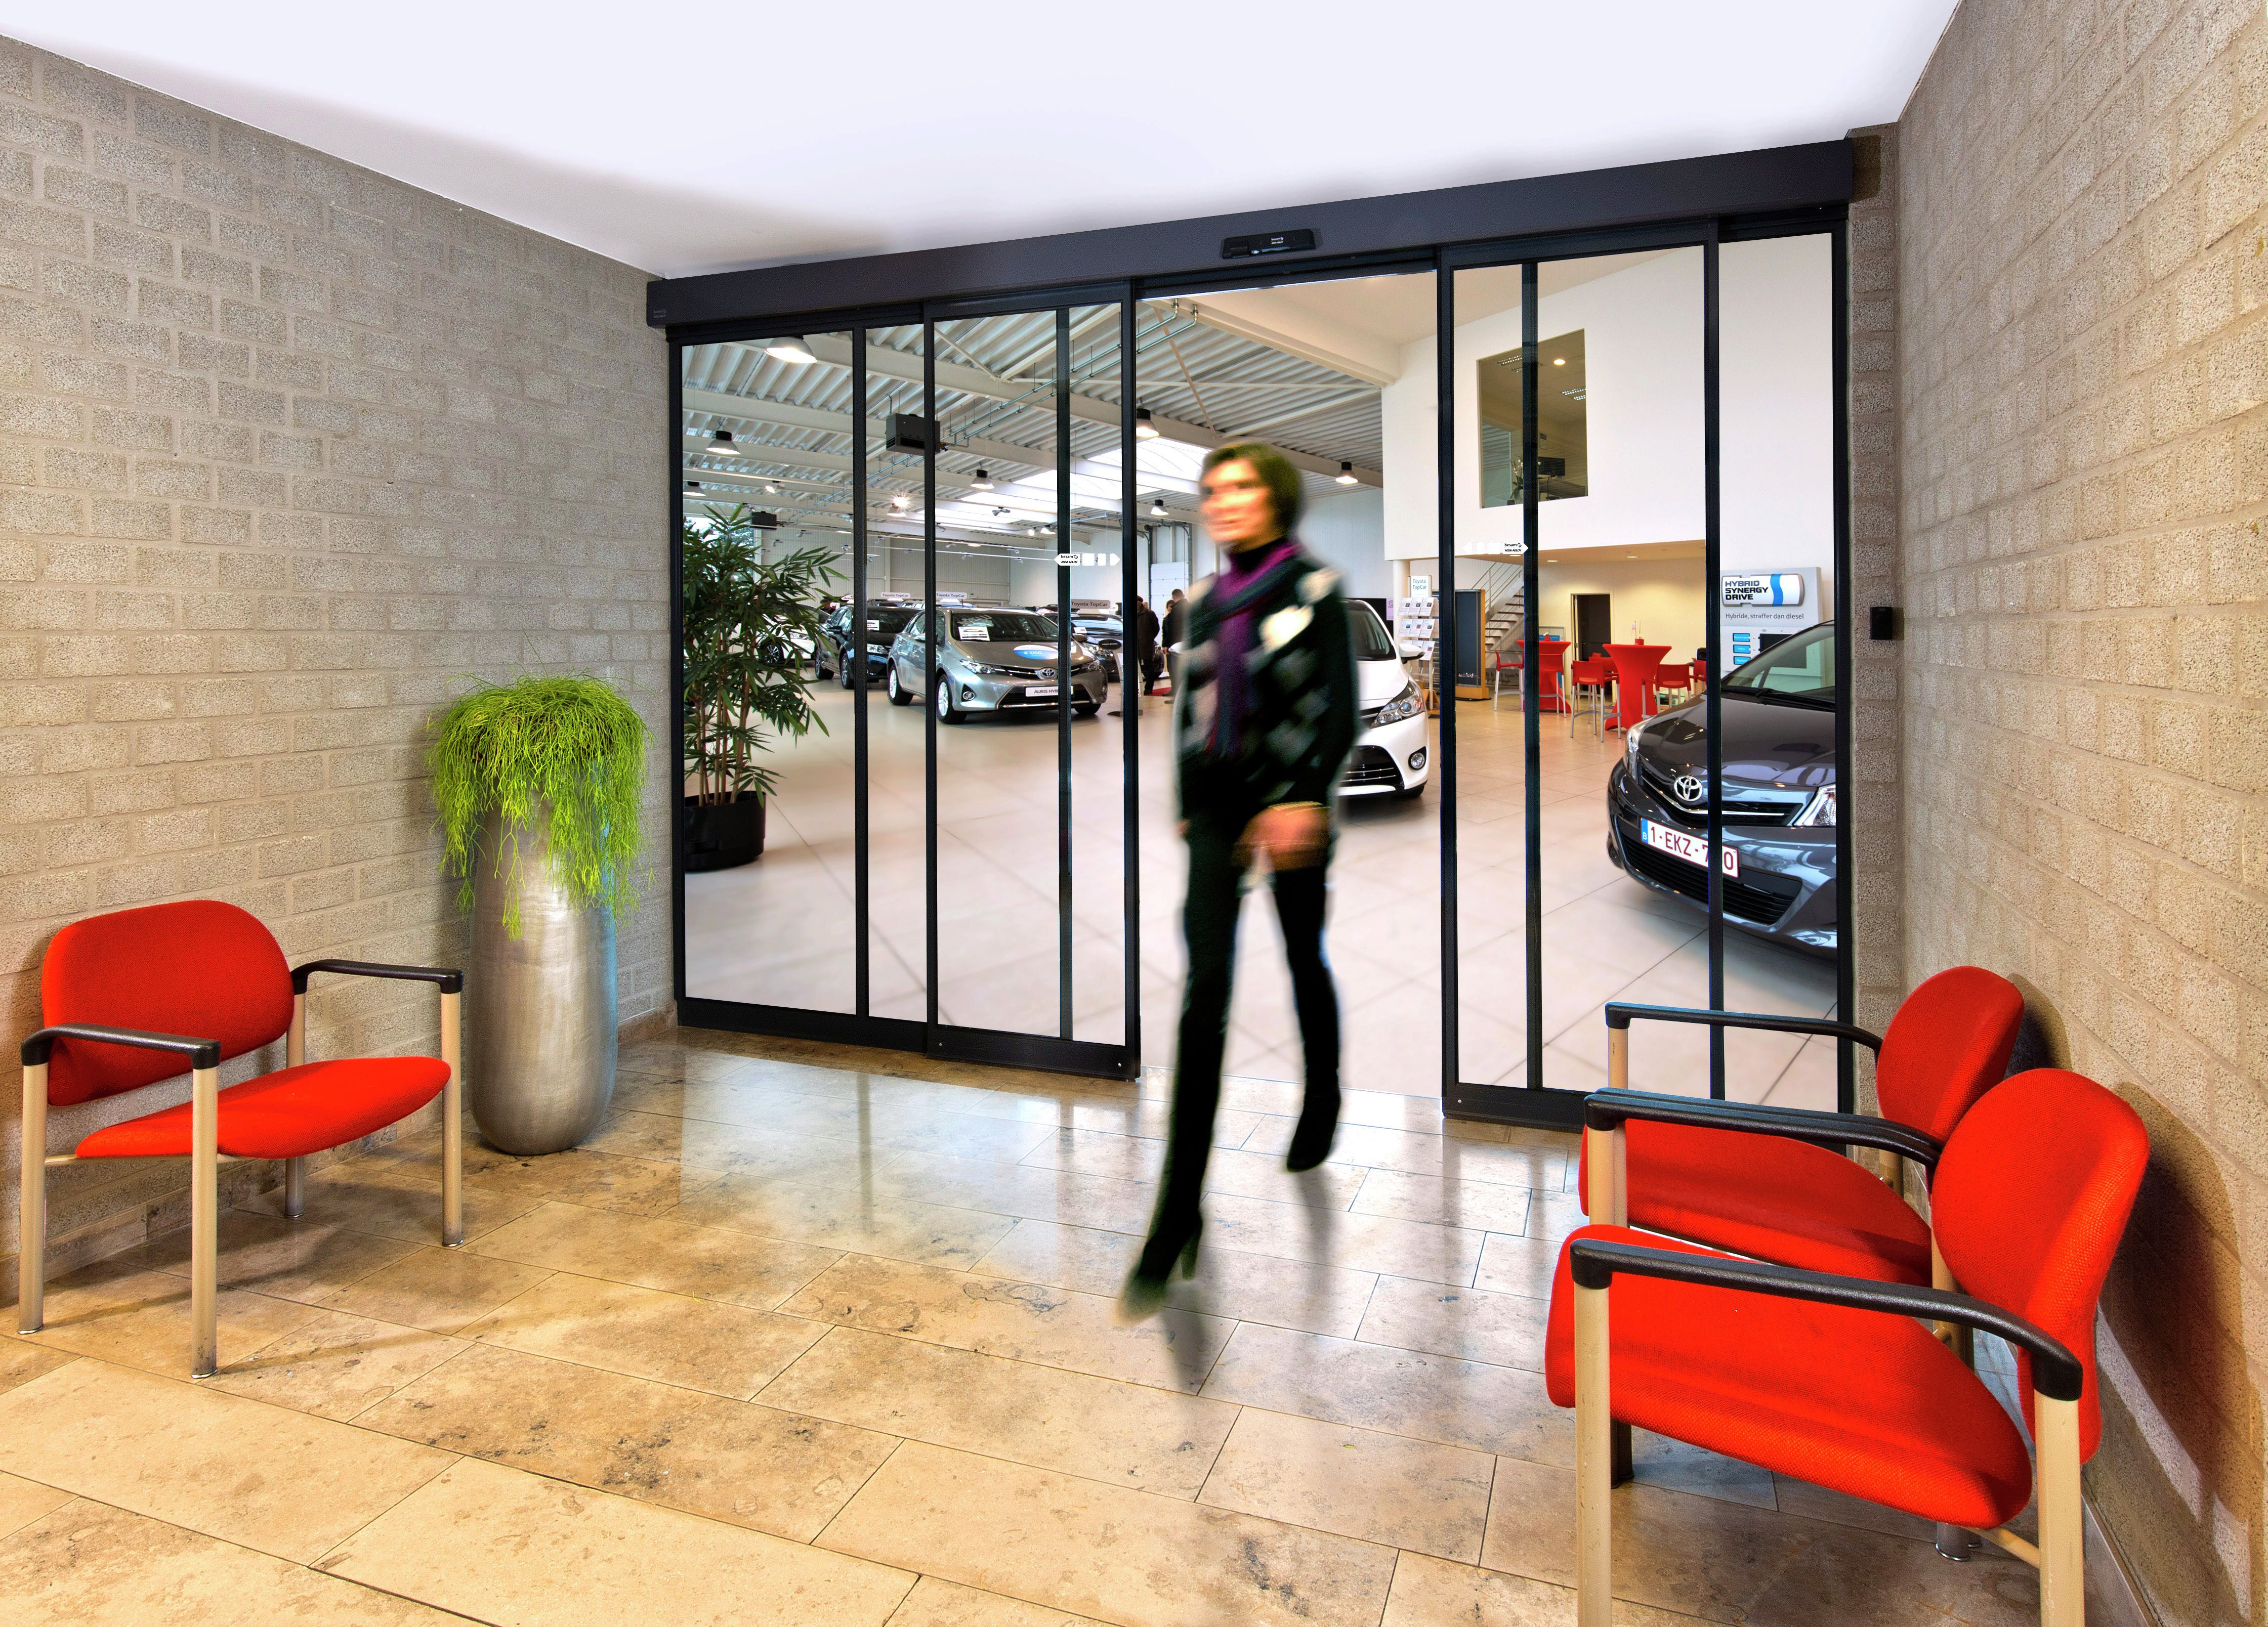 Besam Slim Thermo Sliding Door System providing a welcoming and highly energy efficient entrance. & Besam Slim Thermo Sliding Door System providing a welcoming and ...